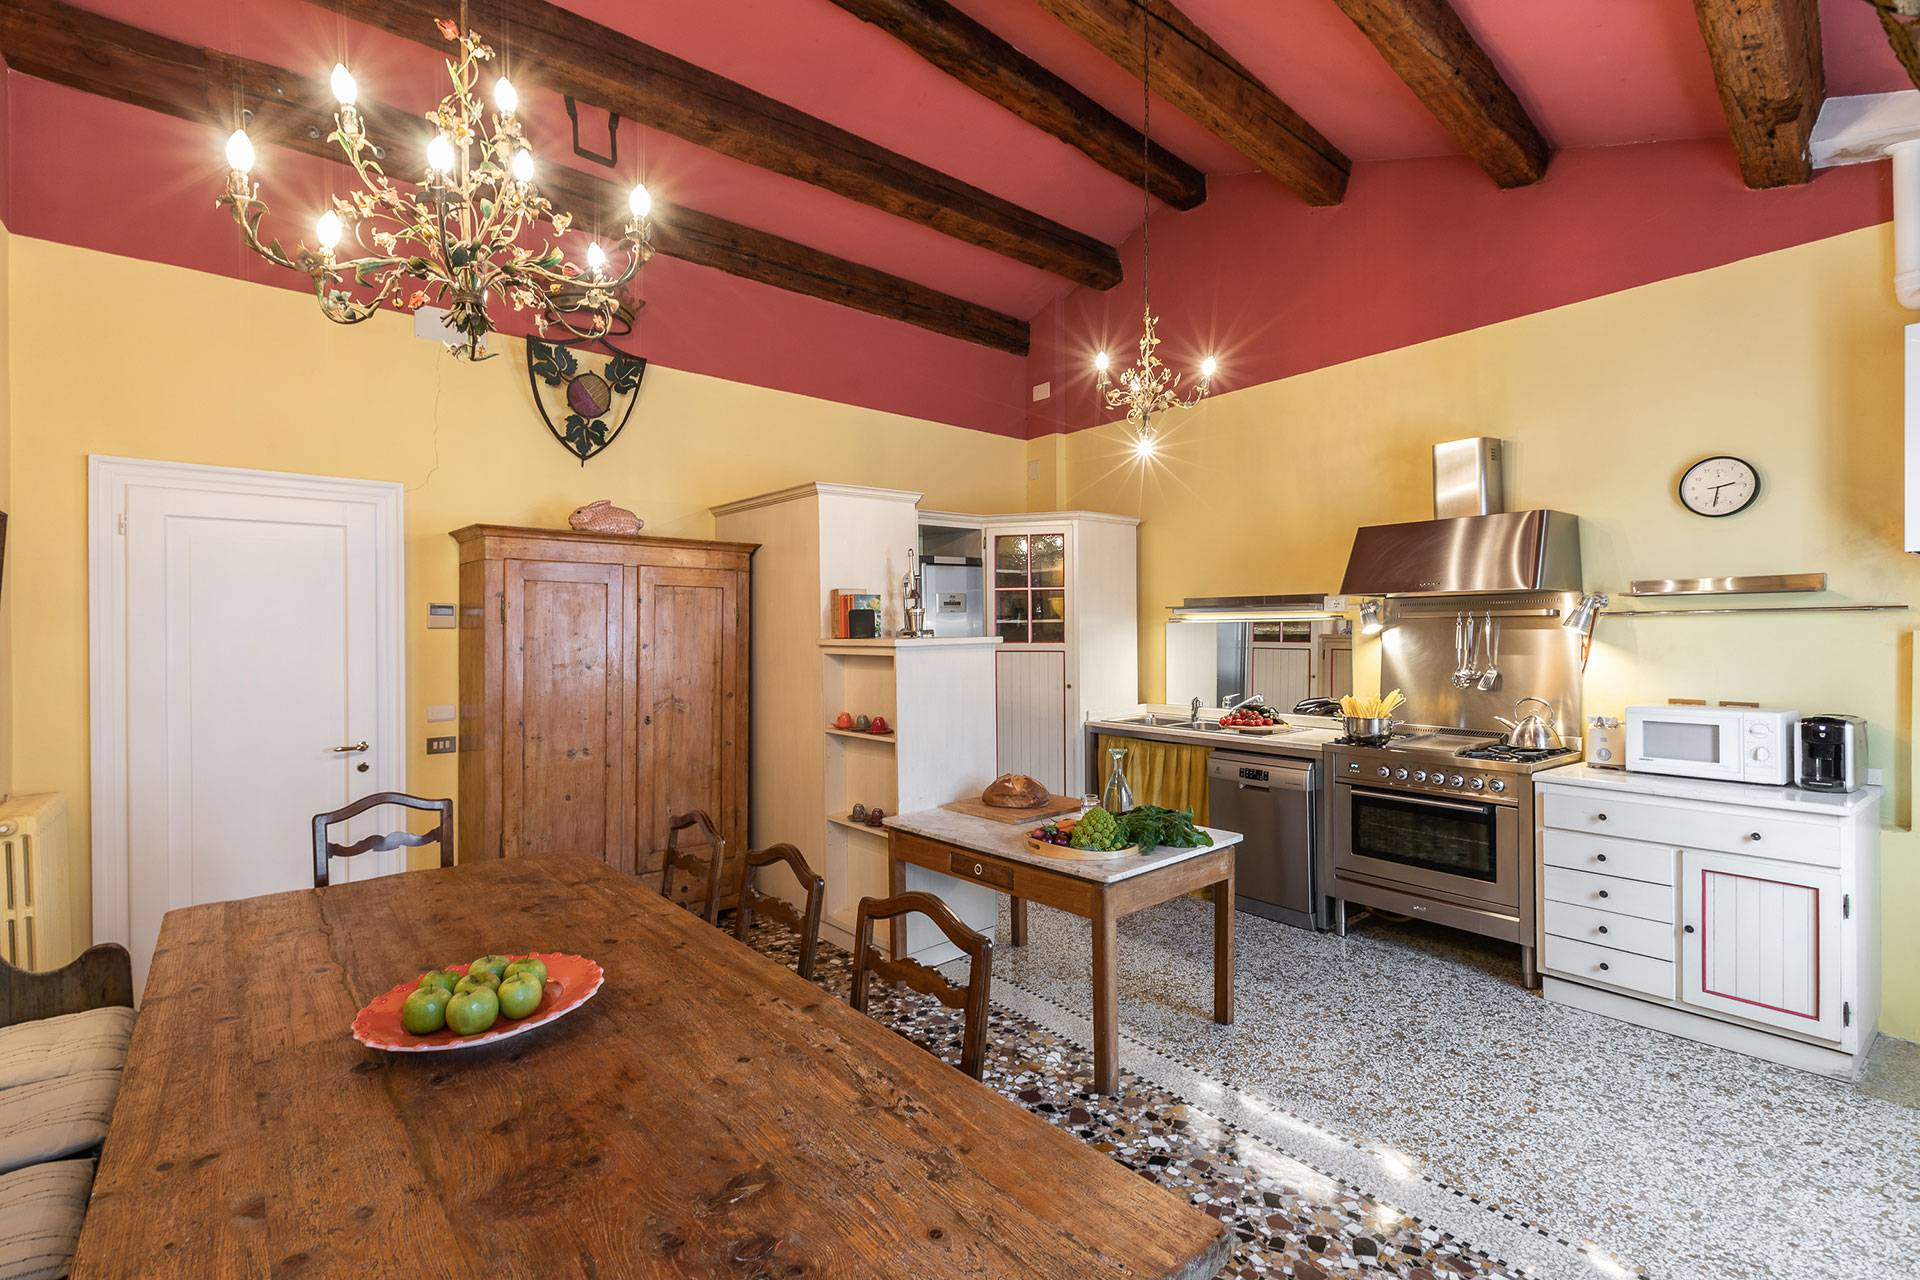 this room is convivial and spacious, perfect for family gatherings